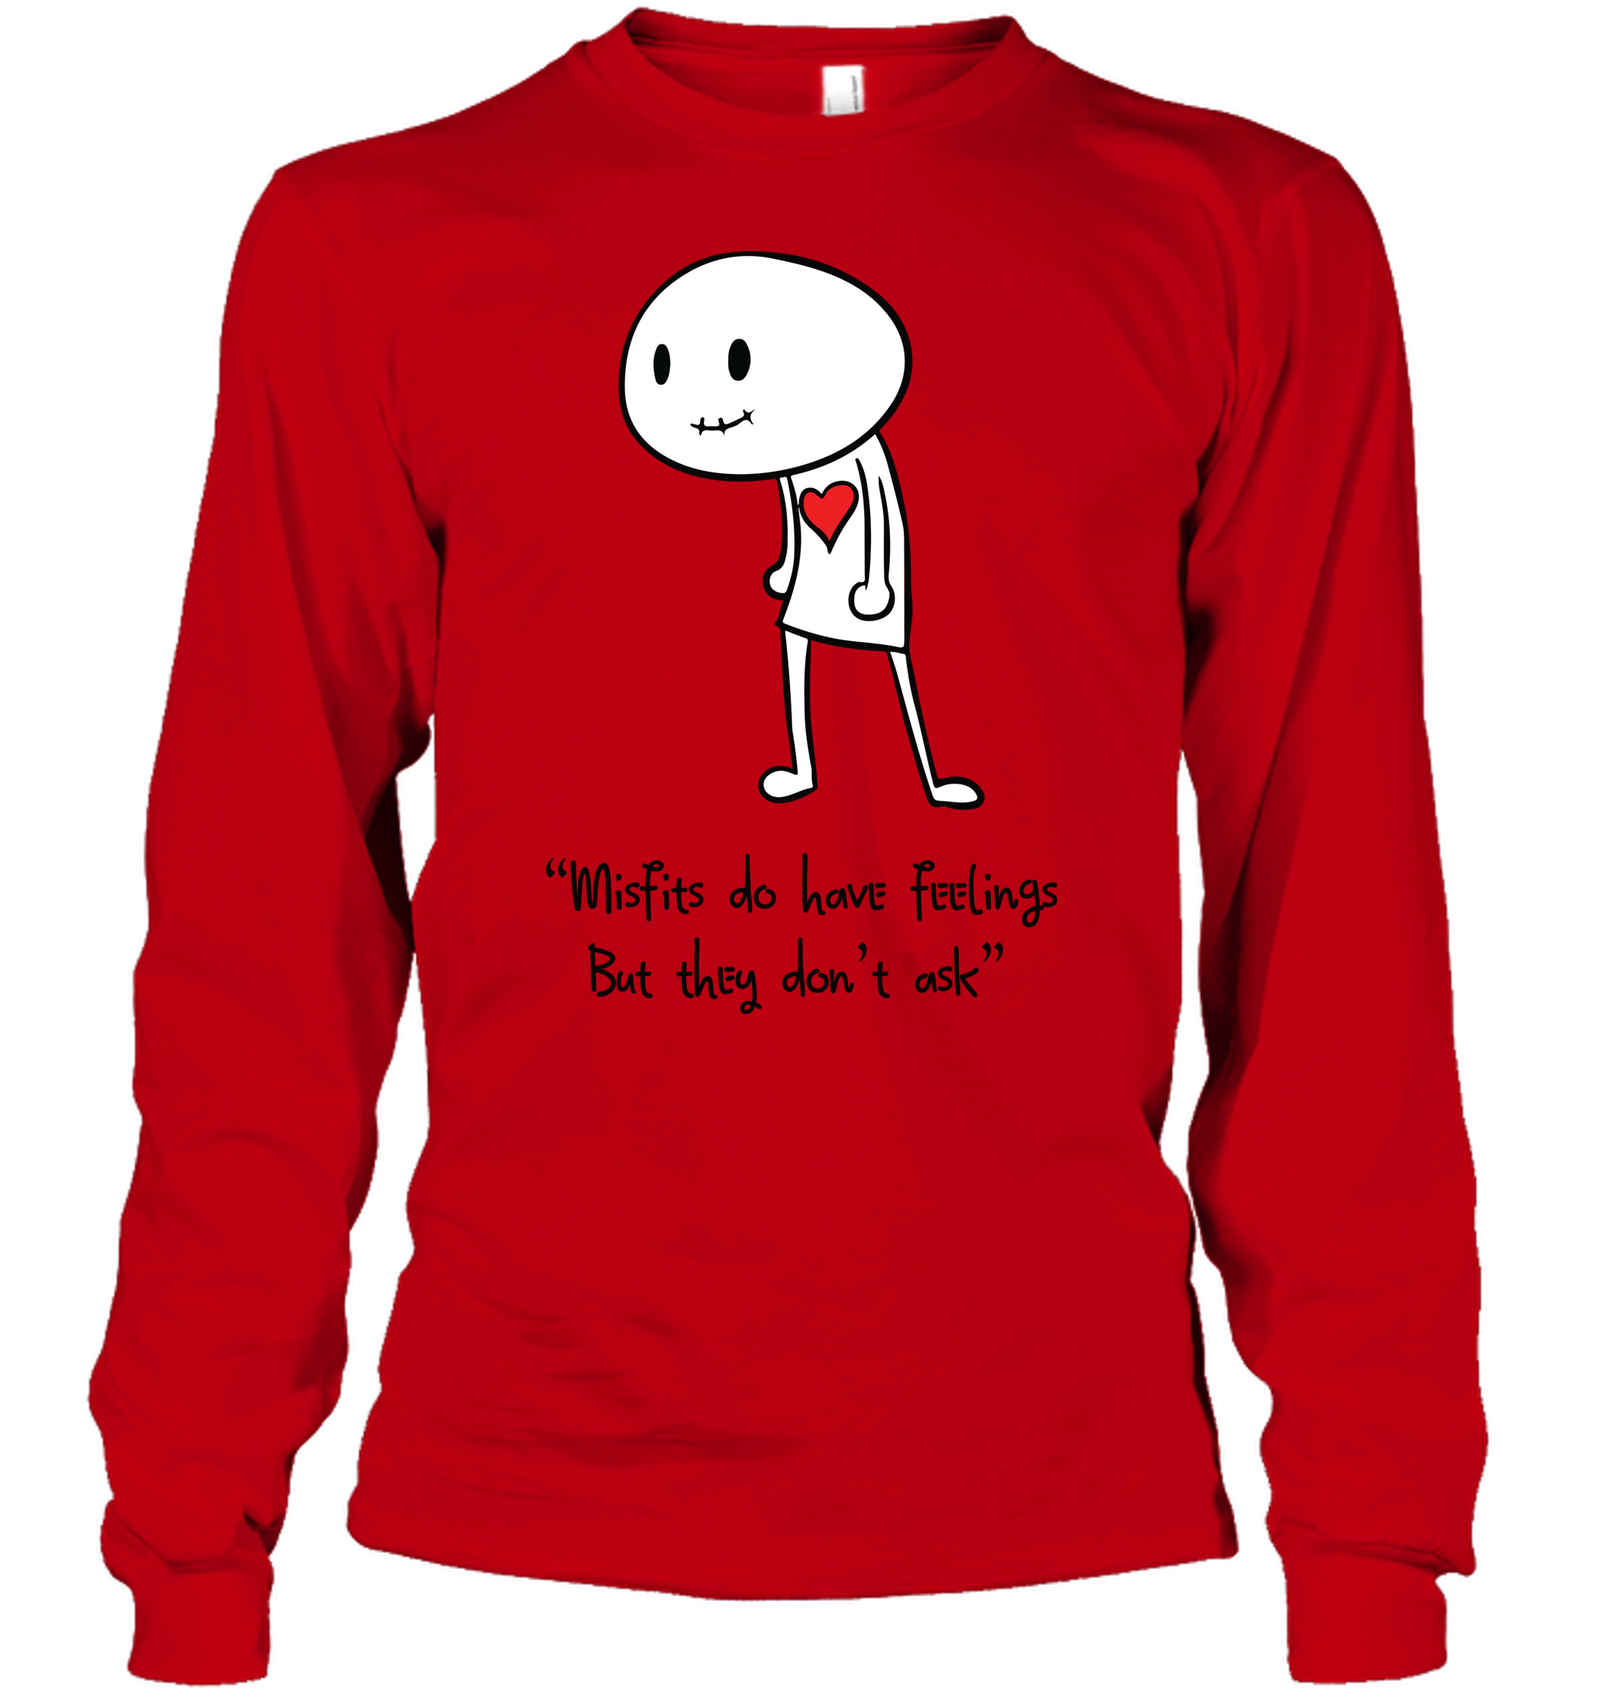 Misfits do have Feelings but they don't ask - Gildan Adult Classic Long Sleeve T-Shirt